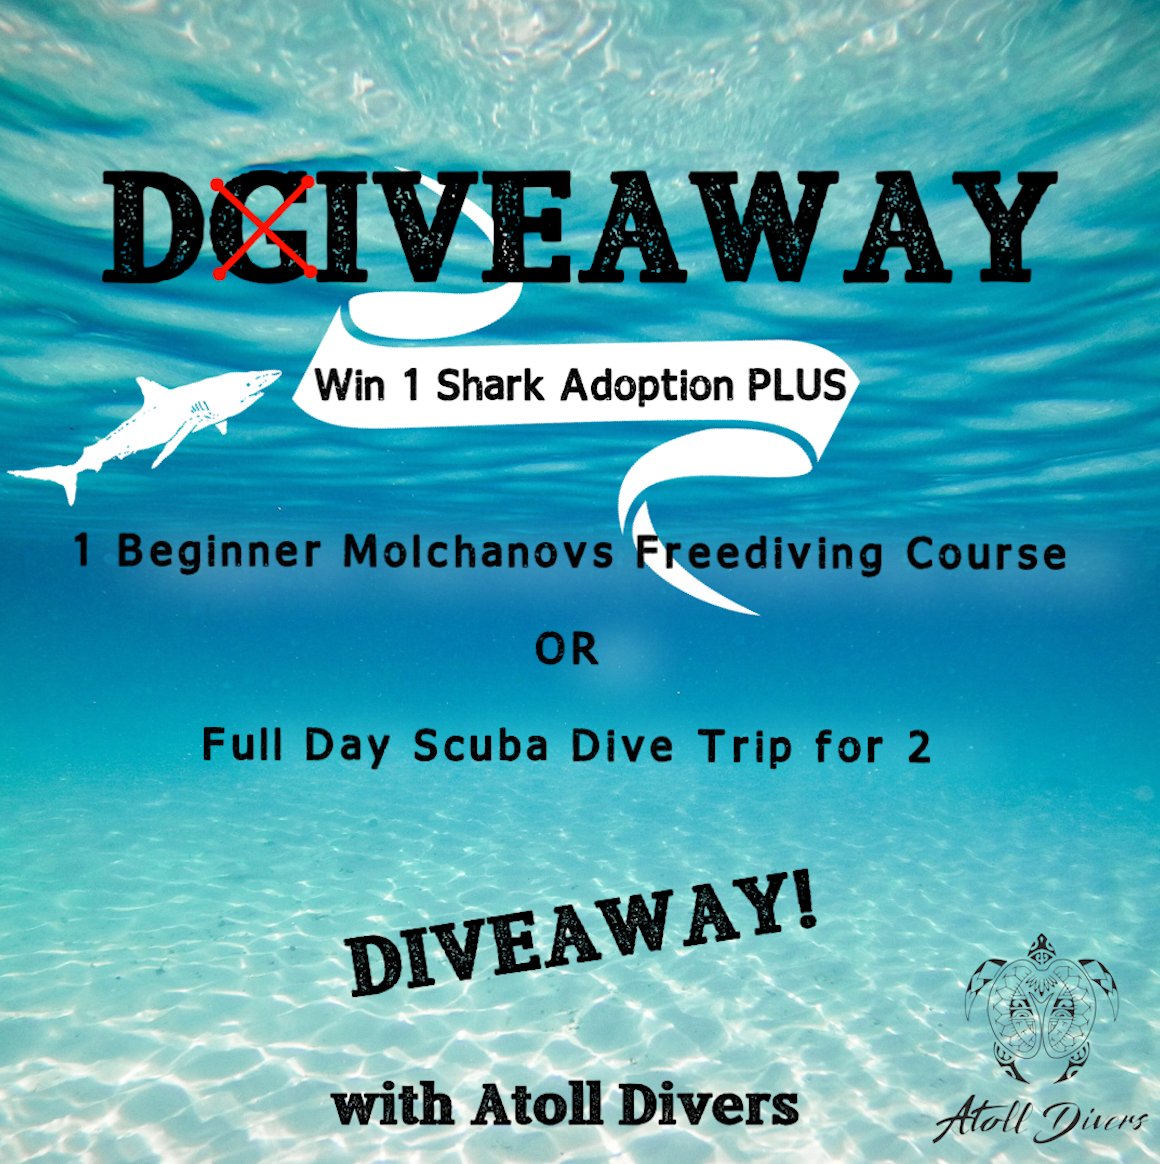 Freediving Course OR Scuba Dive Trip Giveaway